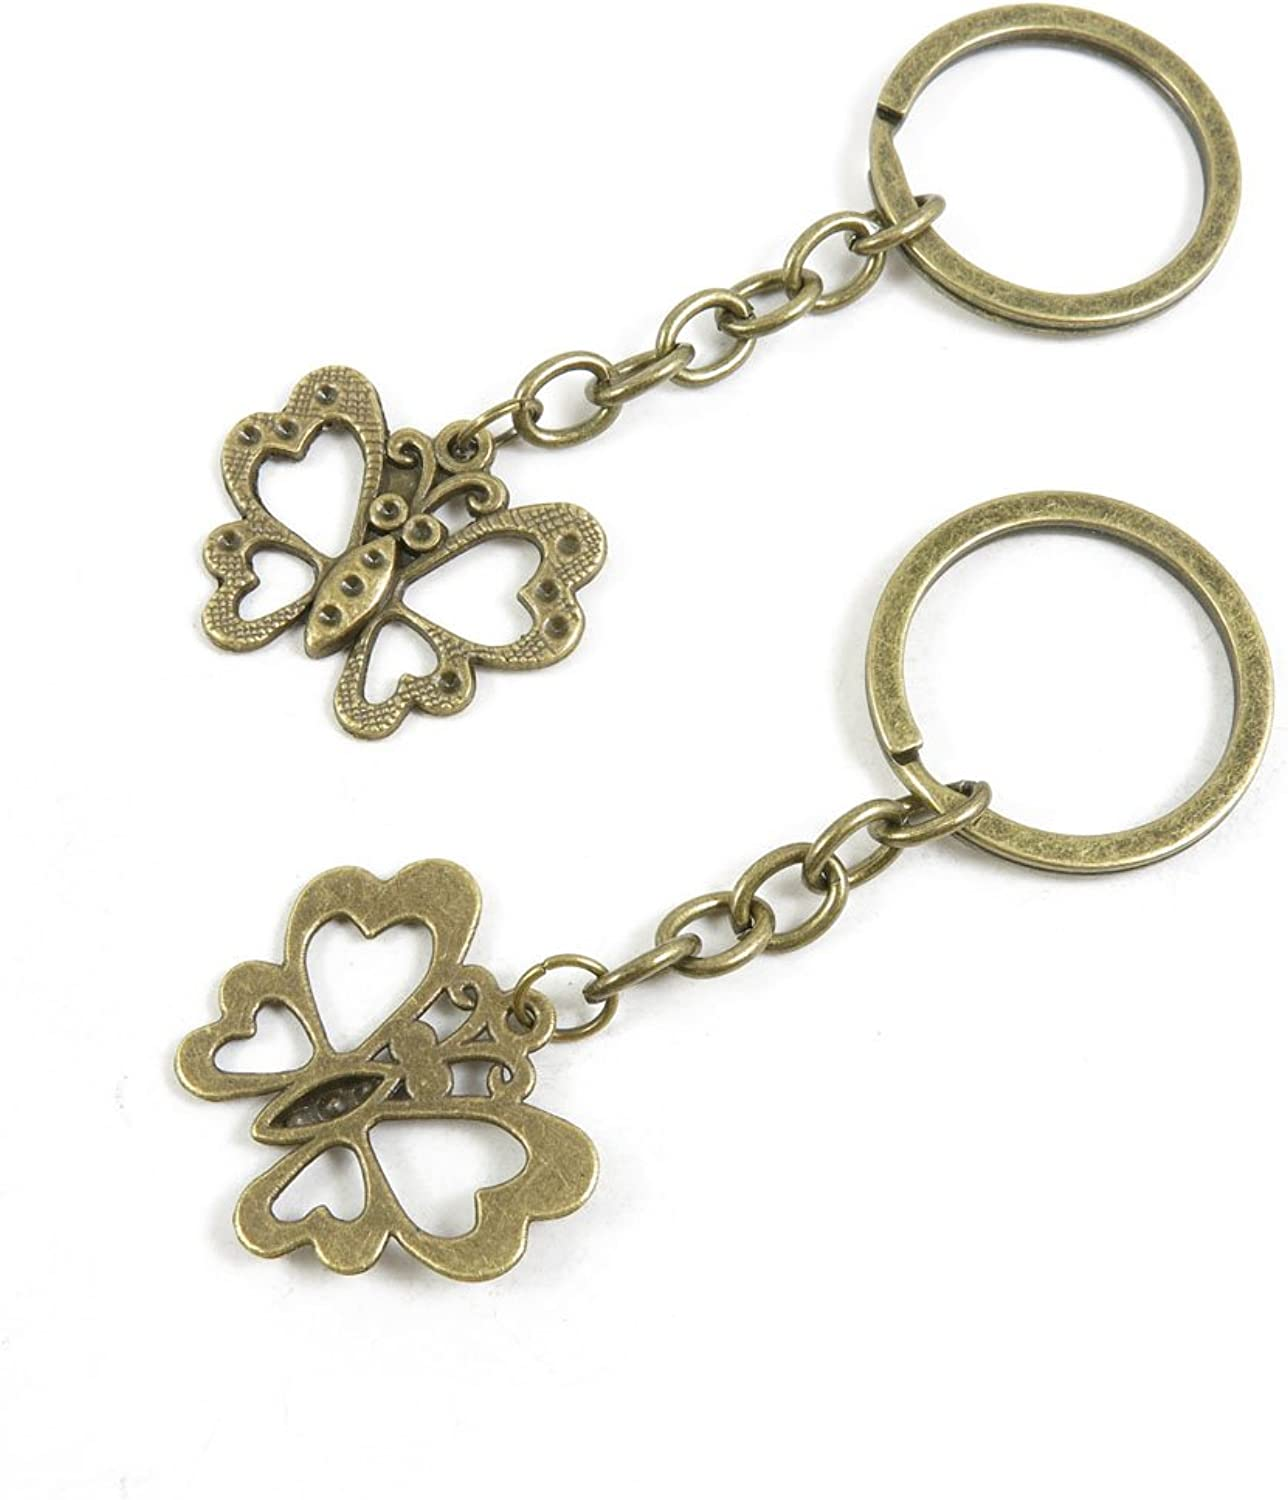 210 Pieces Fashion Jewelry Keyring Keychain Door Car Key Tag Ring Chain Supplier Supply Wholesale Bulk Lots W7SE1 Butterfly